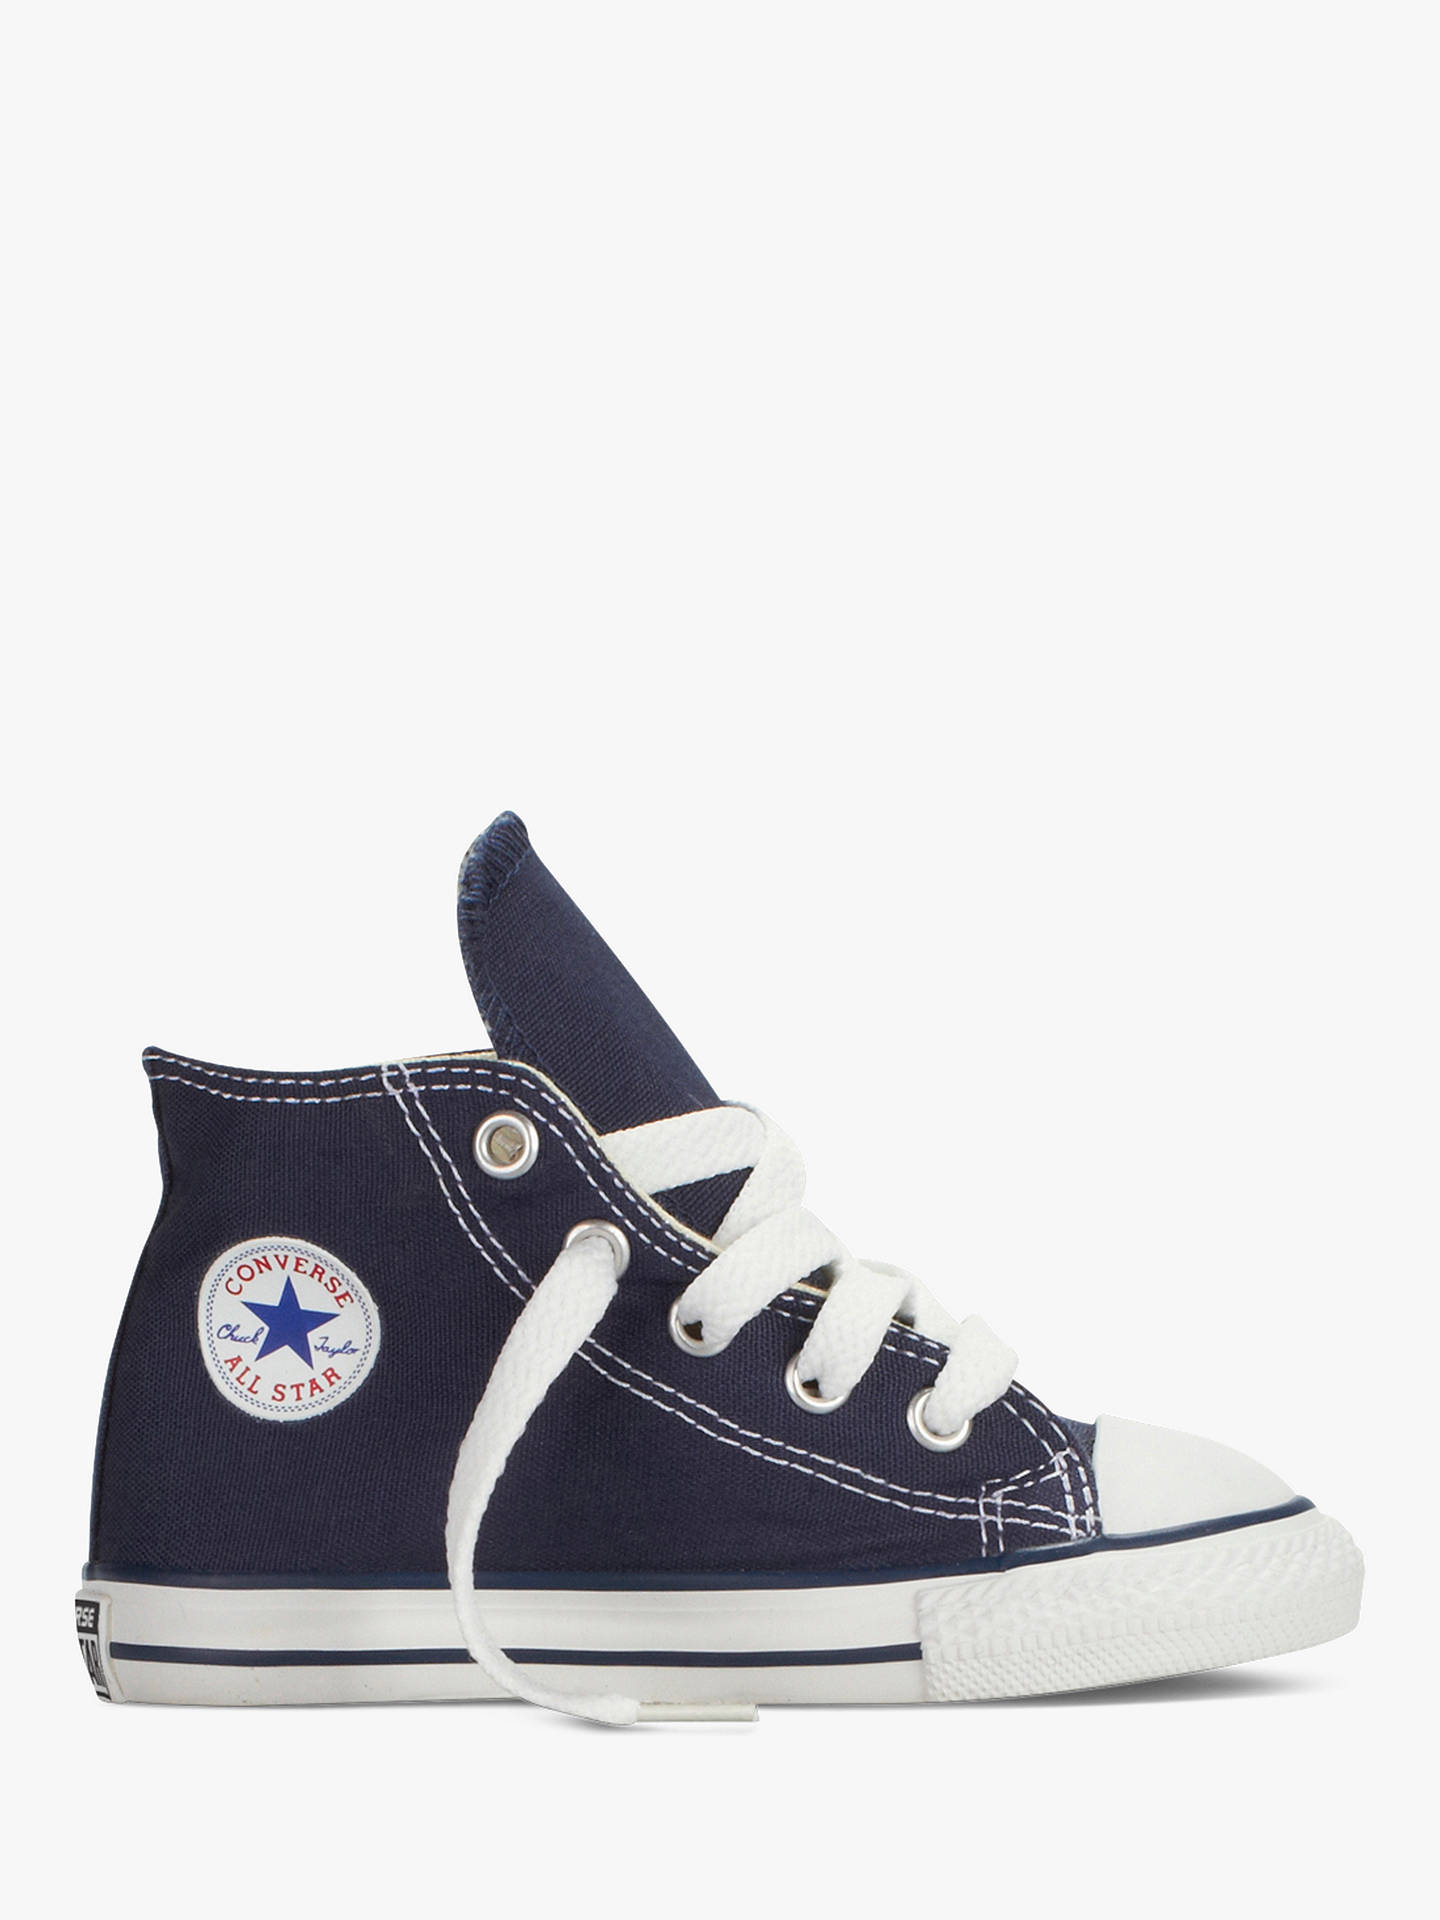 3f80d7fb6779 Converse Children s Chuck Taylor All Star Core Hi-Top Trainers at ...